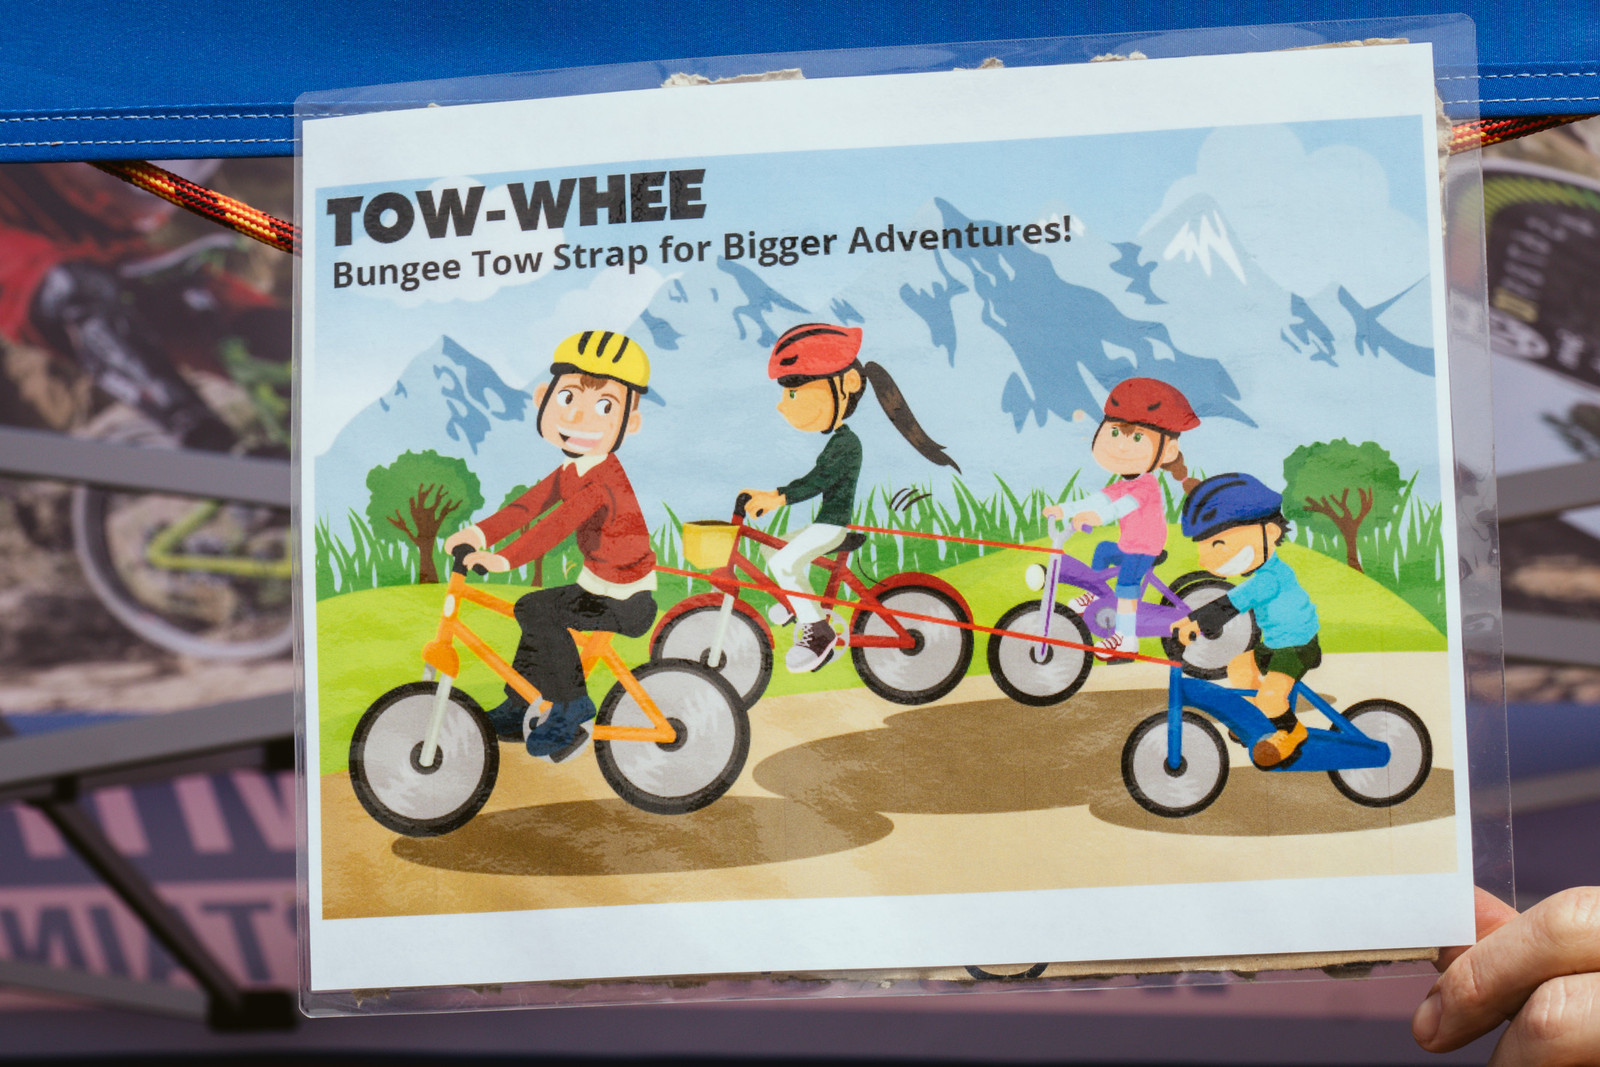 Tow-Whee Bungee for the Kids - PIT BITS - Fresh Products from the Sedona Mountain Bike Festival - Mountain Biking Pictures - Vital MTB